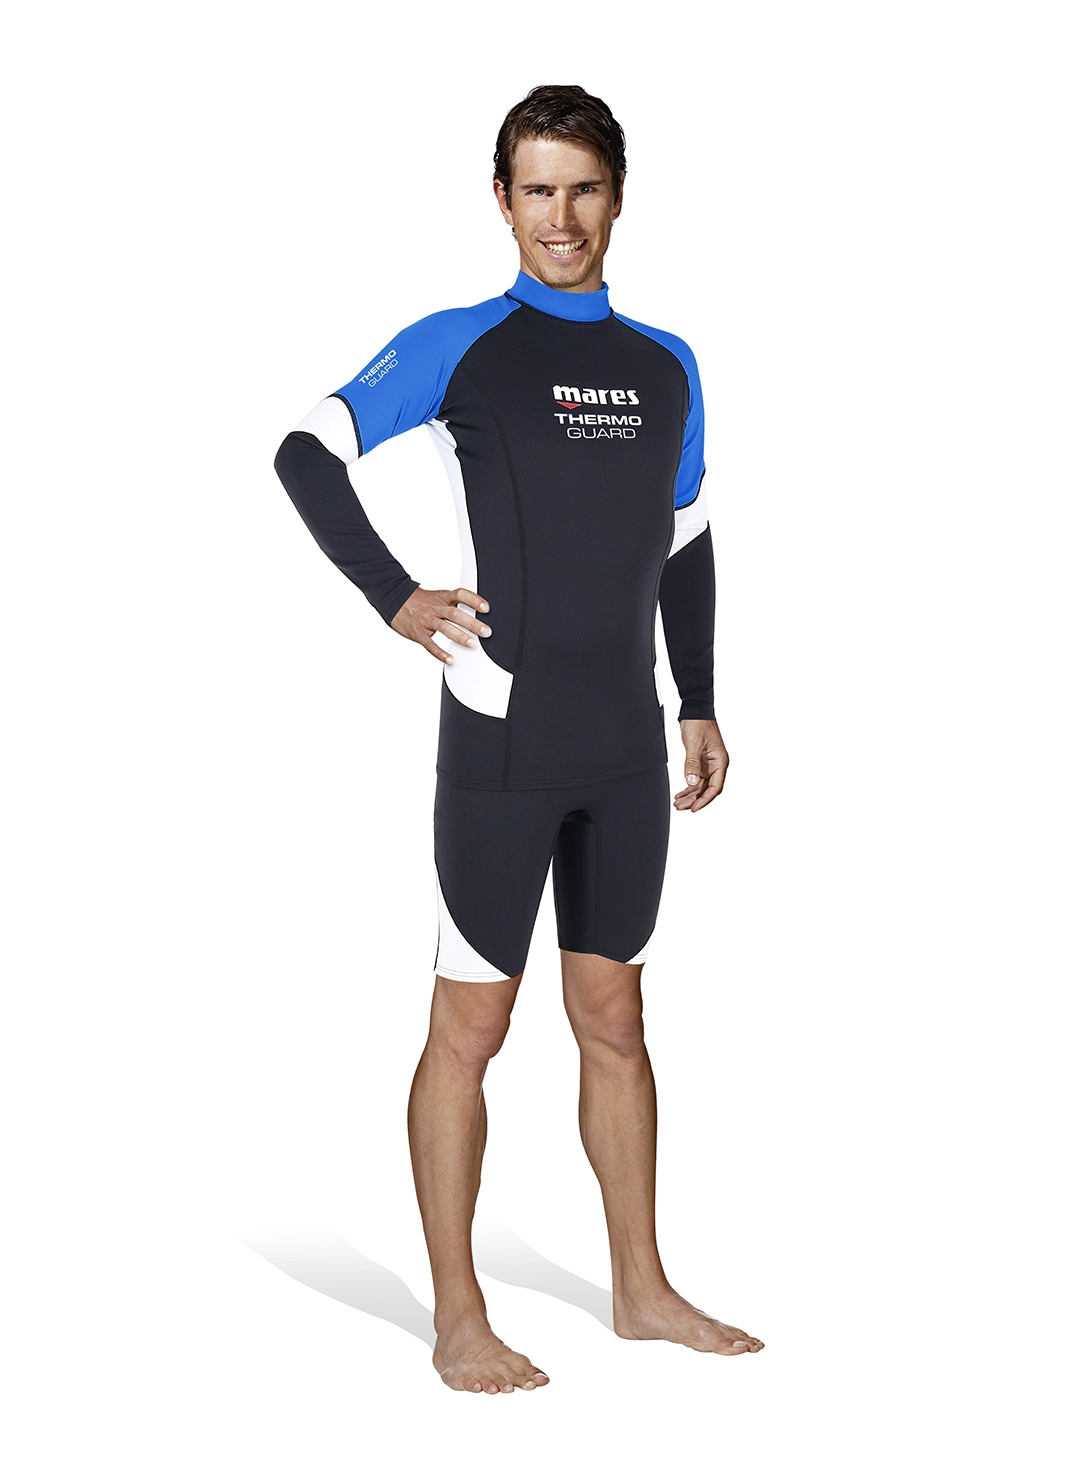 MARES - THERMO GUARD Shorts 0,5mm Herren